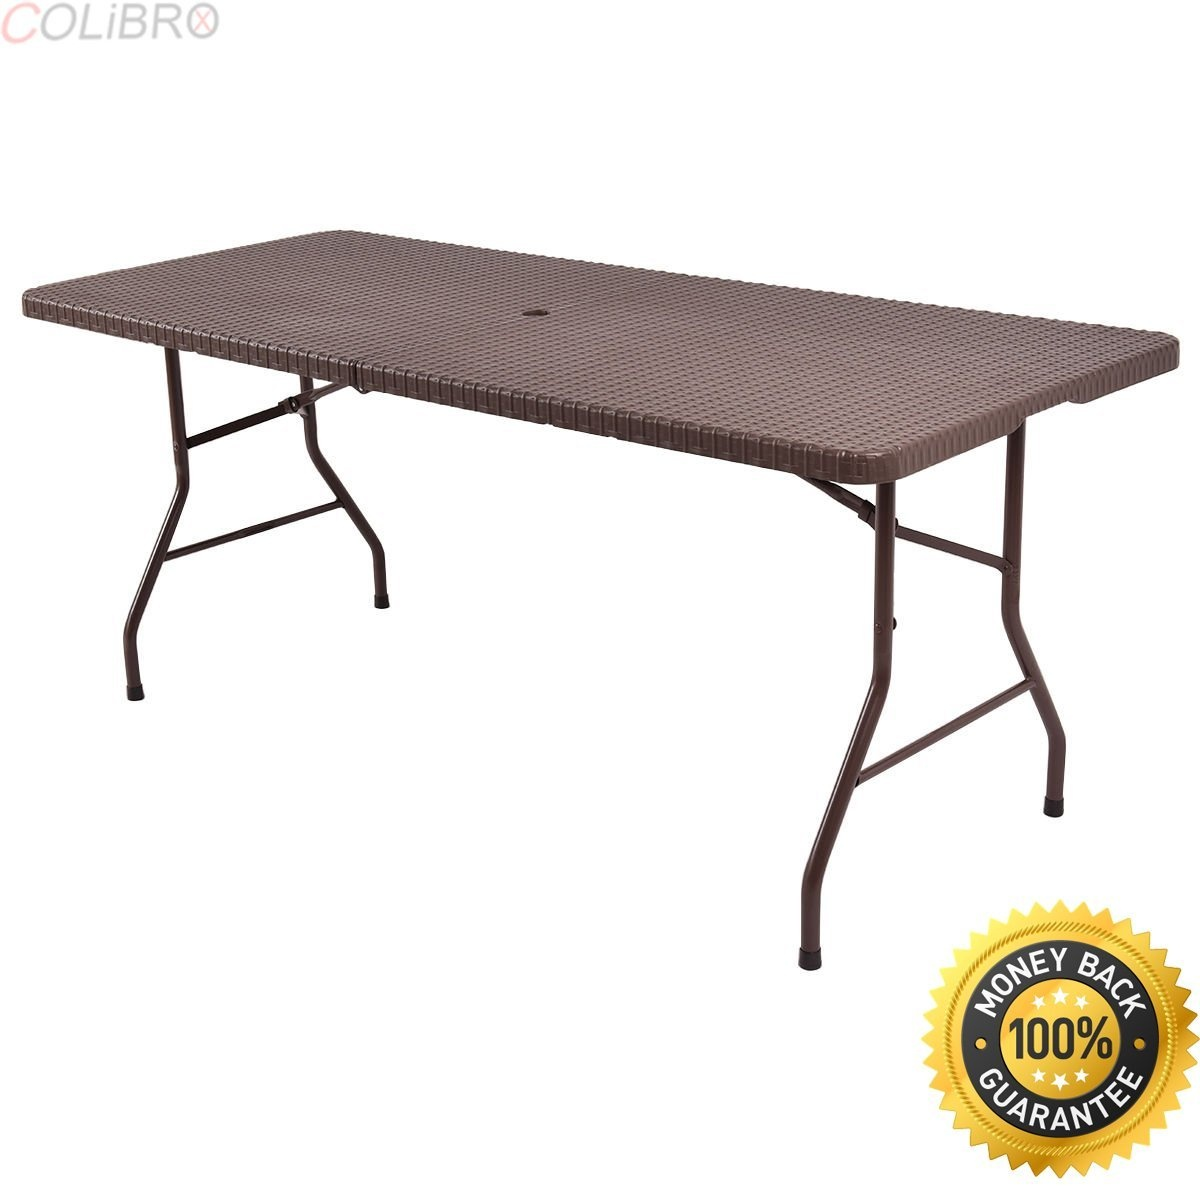 Colibrox 1 8m Folding Table Rattan Portable Indoor Outdoor Picnic Party Dining Camping Conference Tables Best